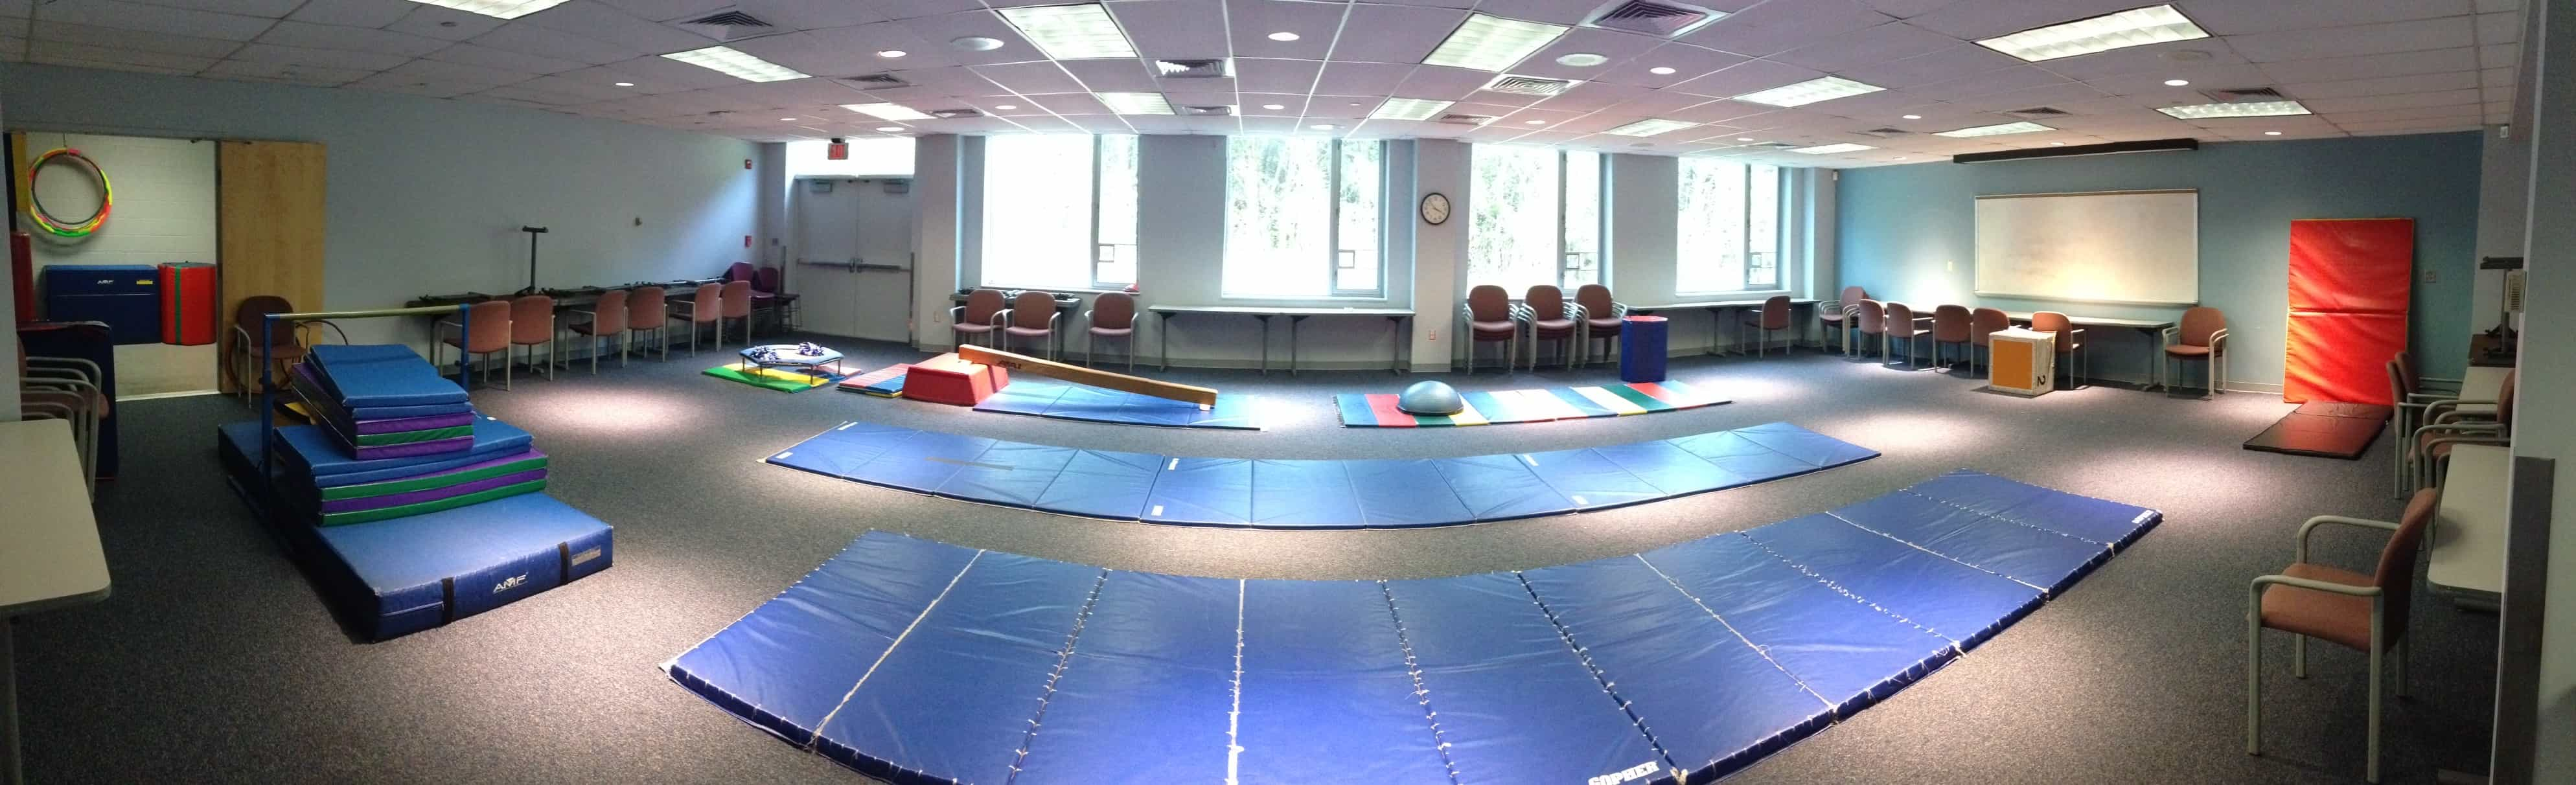 Gymnastic party room setup